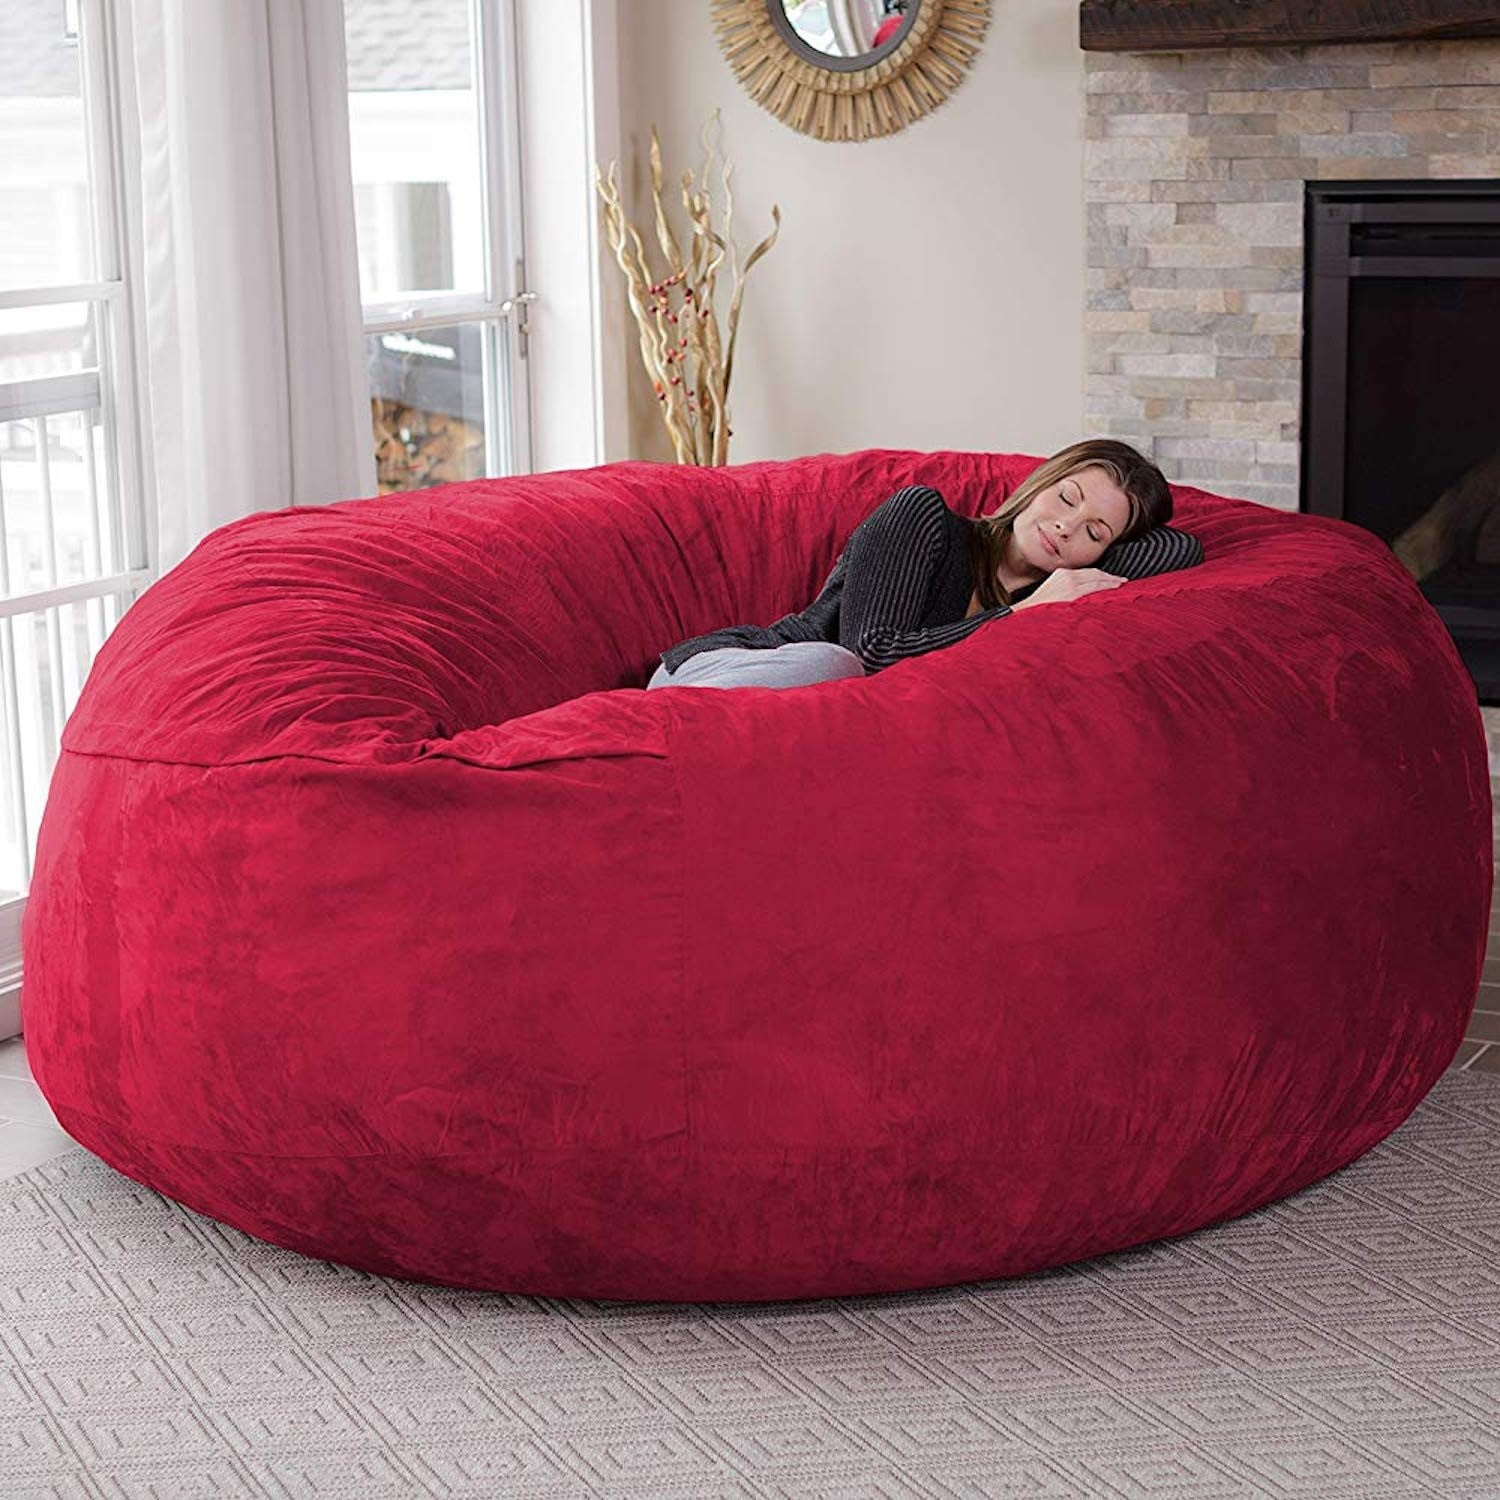 Chillsack Beanbag On Amazon Popsugar Family